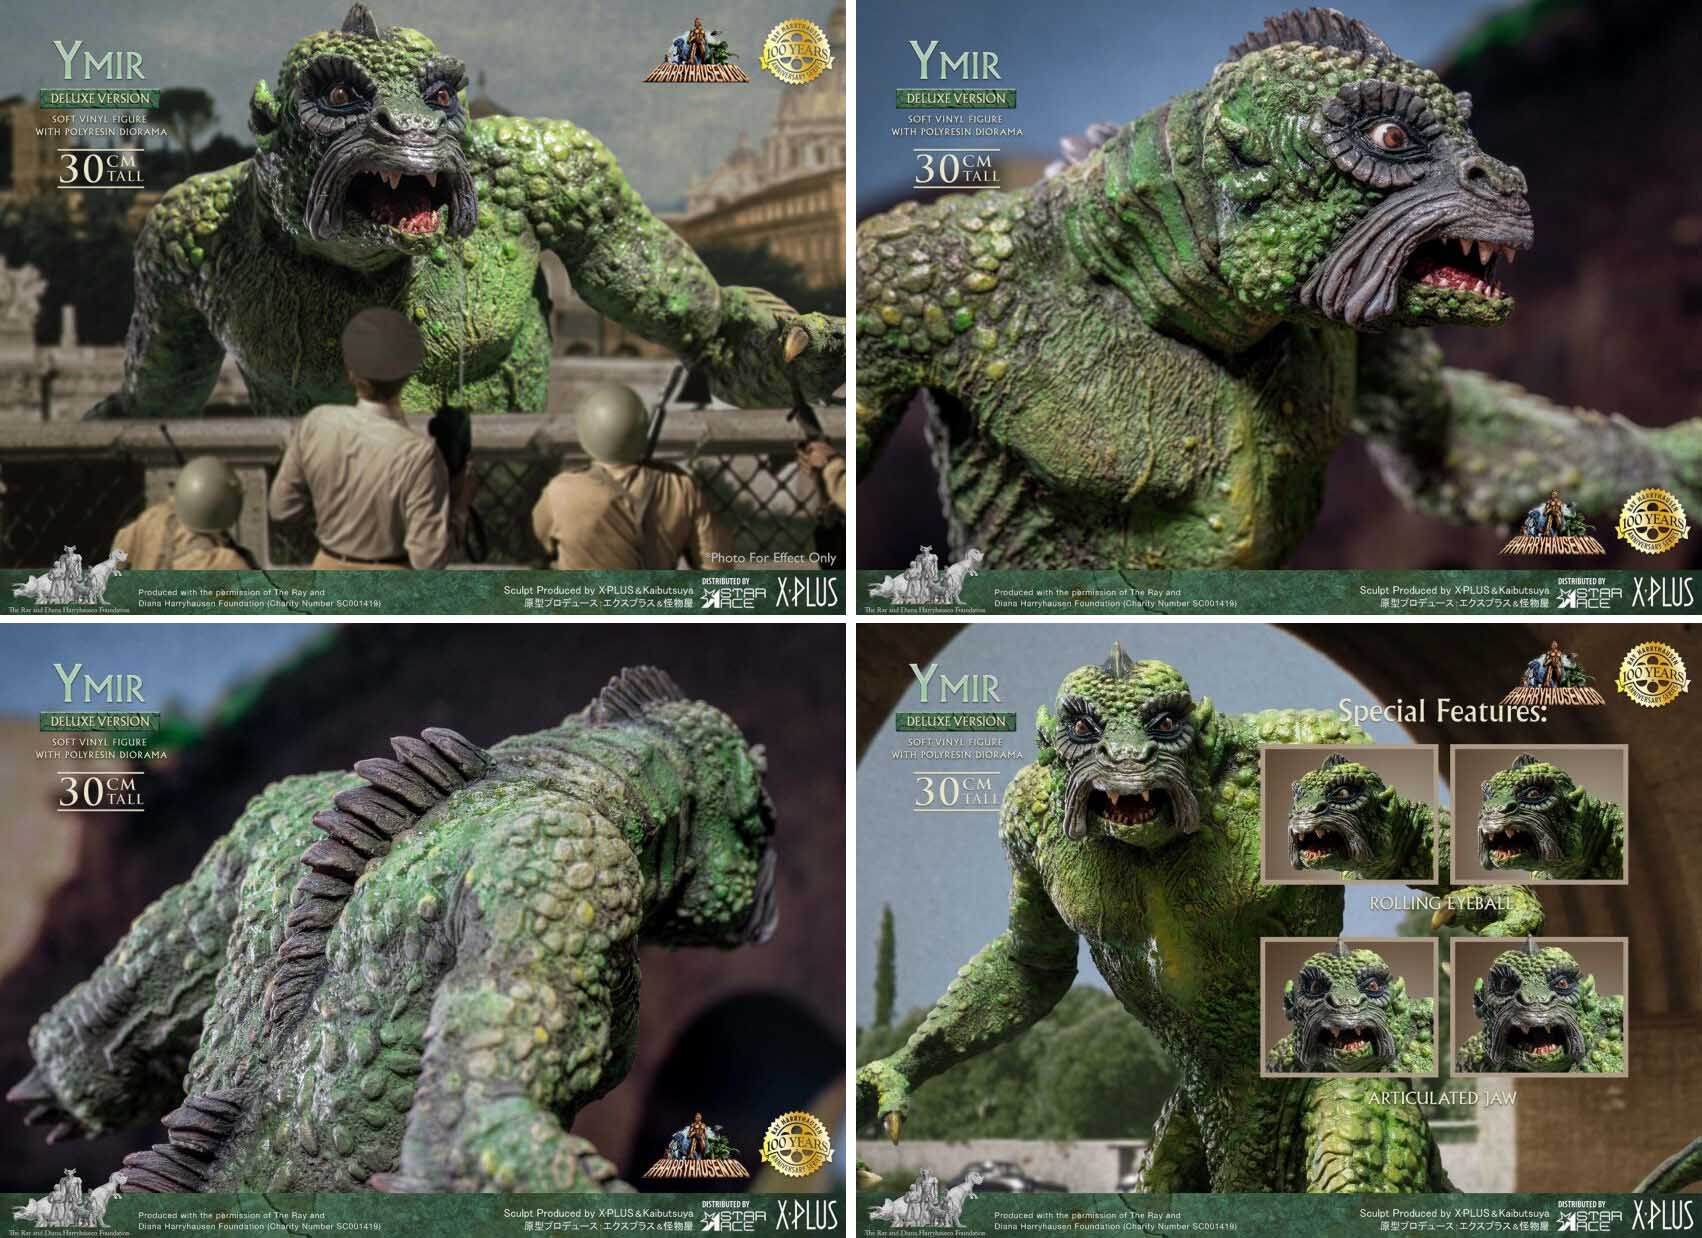 STAR ACE 20 MILLION MILES TO EARTH YMIR SOFT VINYL STATUE [DELUXE VERSION]